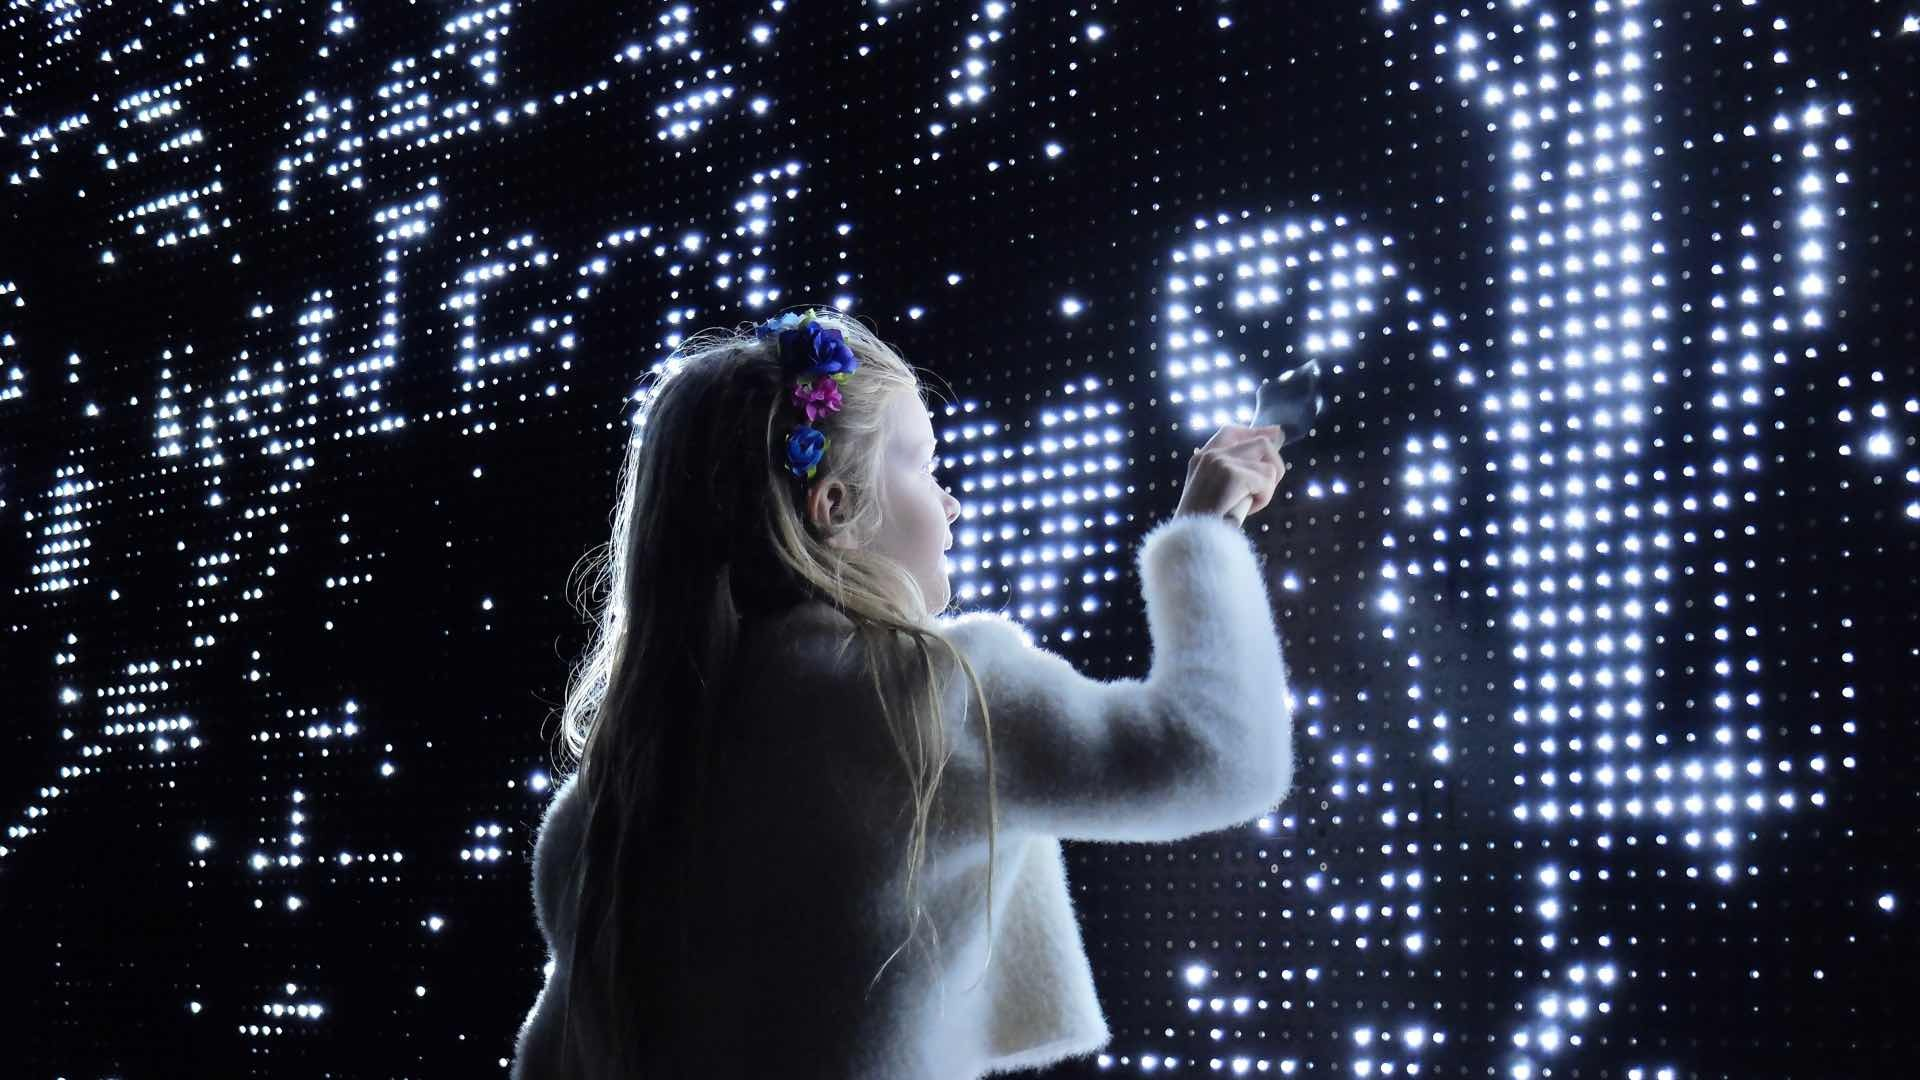 Small girl interacting with the Waterlight Graffiti installation